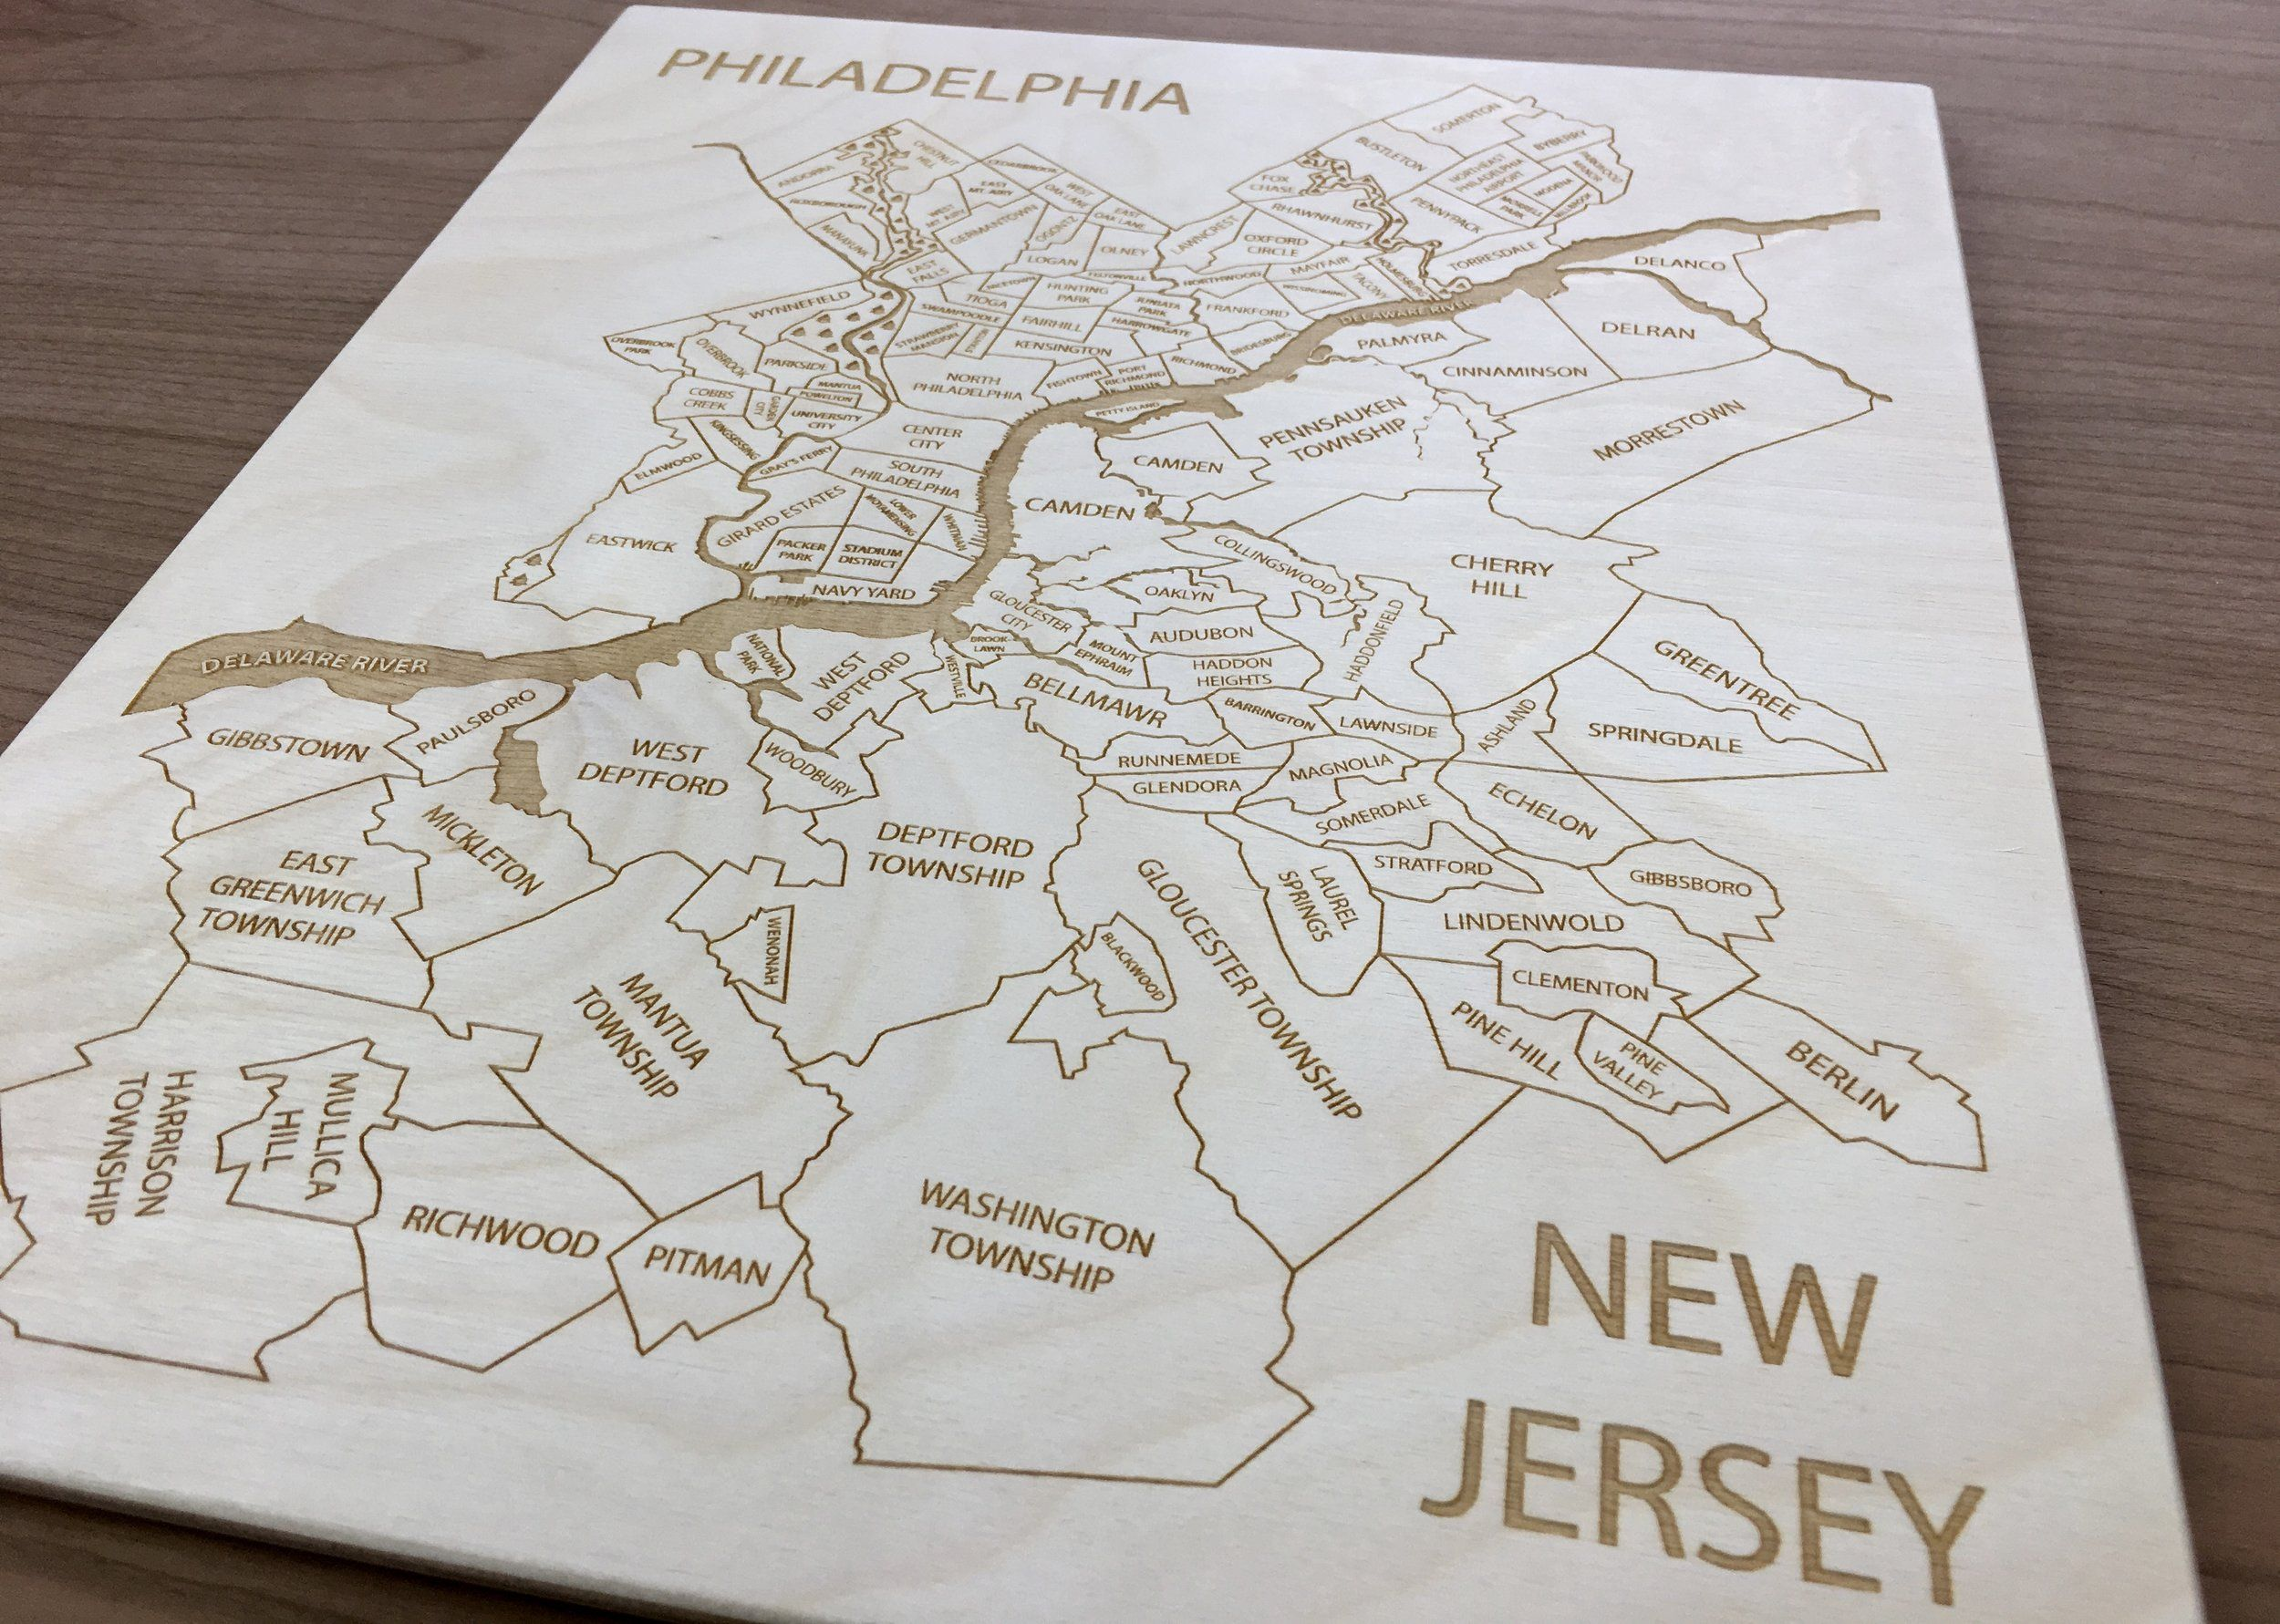 PhiladelphiaNew Jersey Engraved Wood Map by Etched